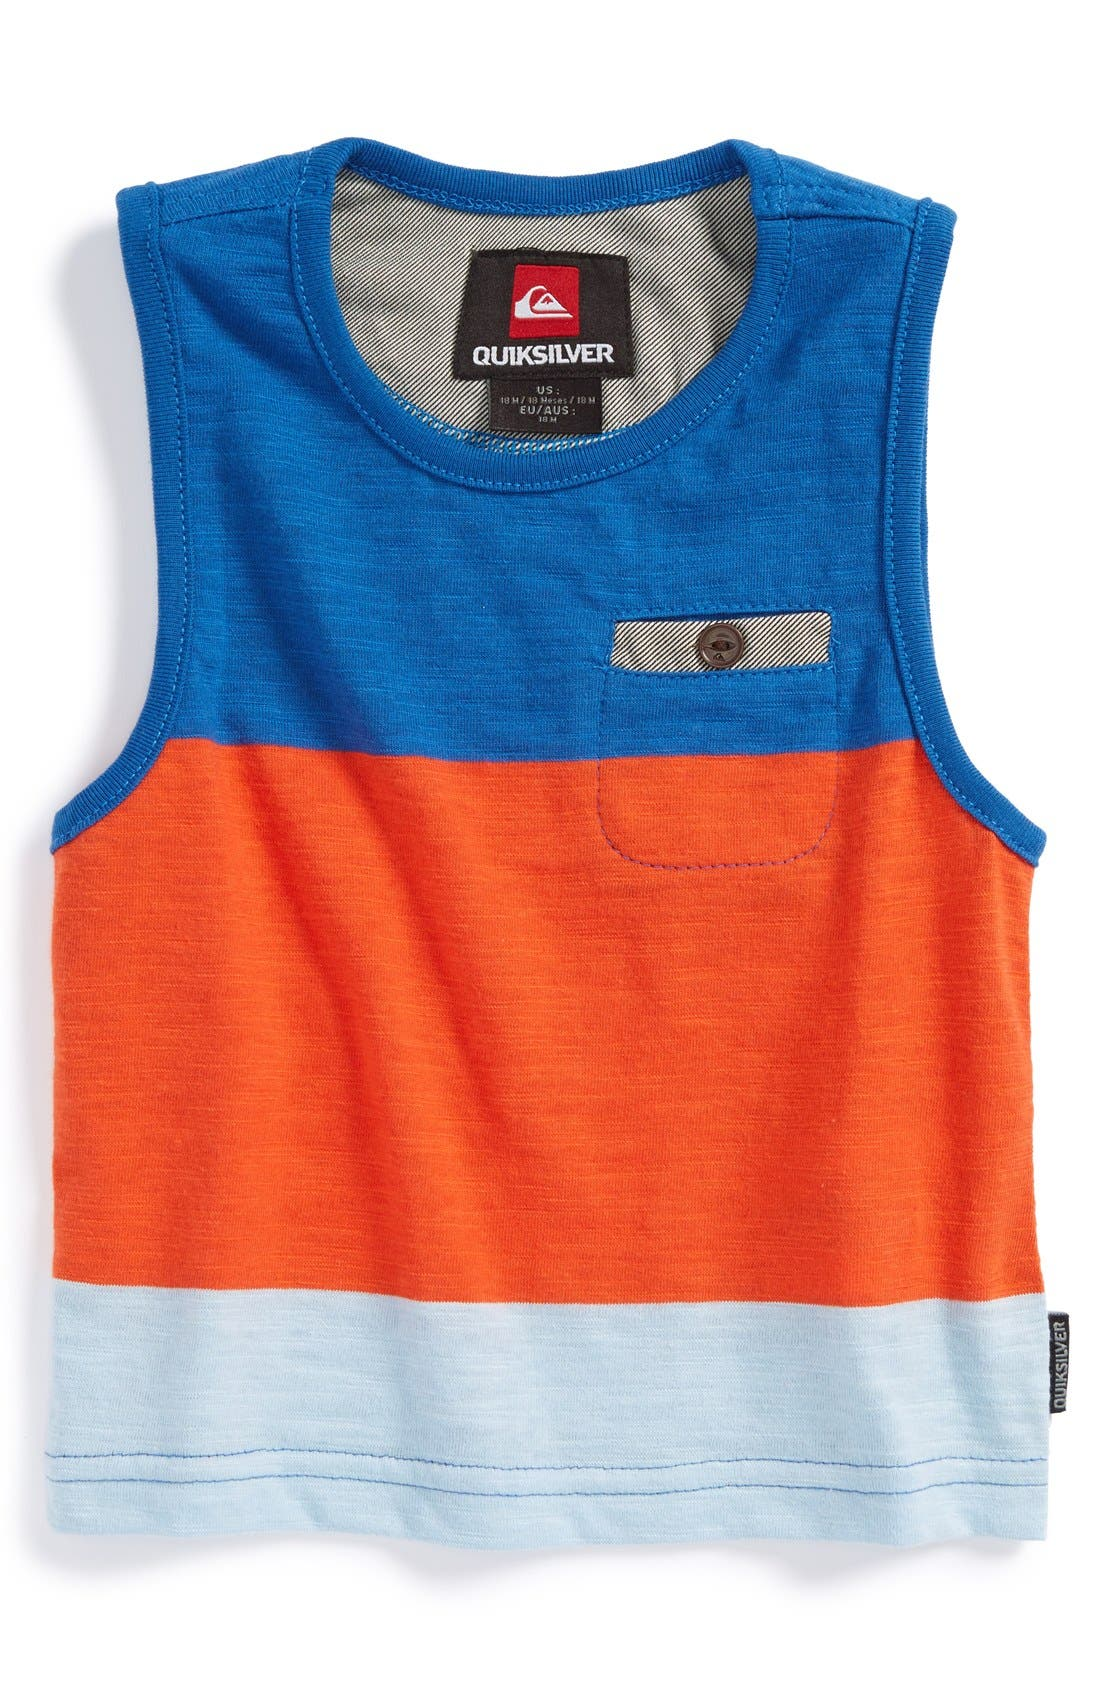 Alternate Image 1 Selected - Quiksilver 'Half Pint' Slub Tank Top (Baby Boys)